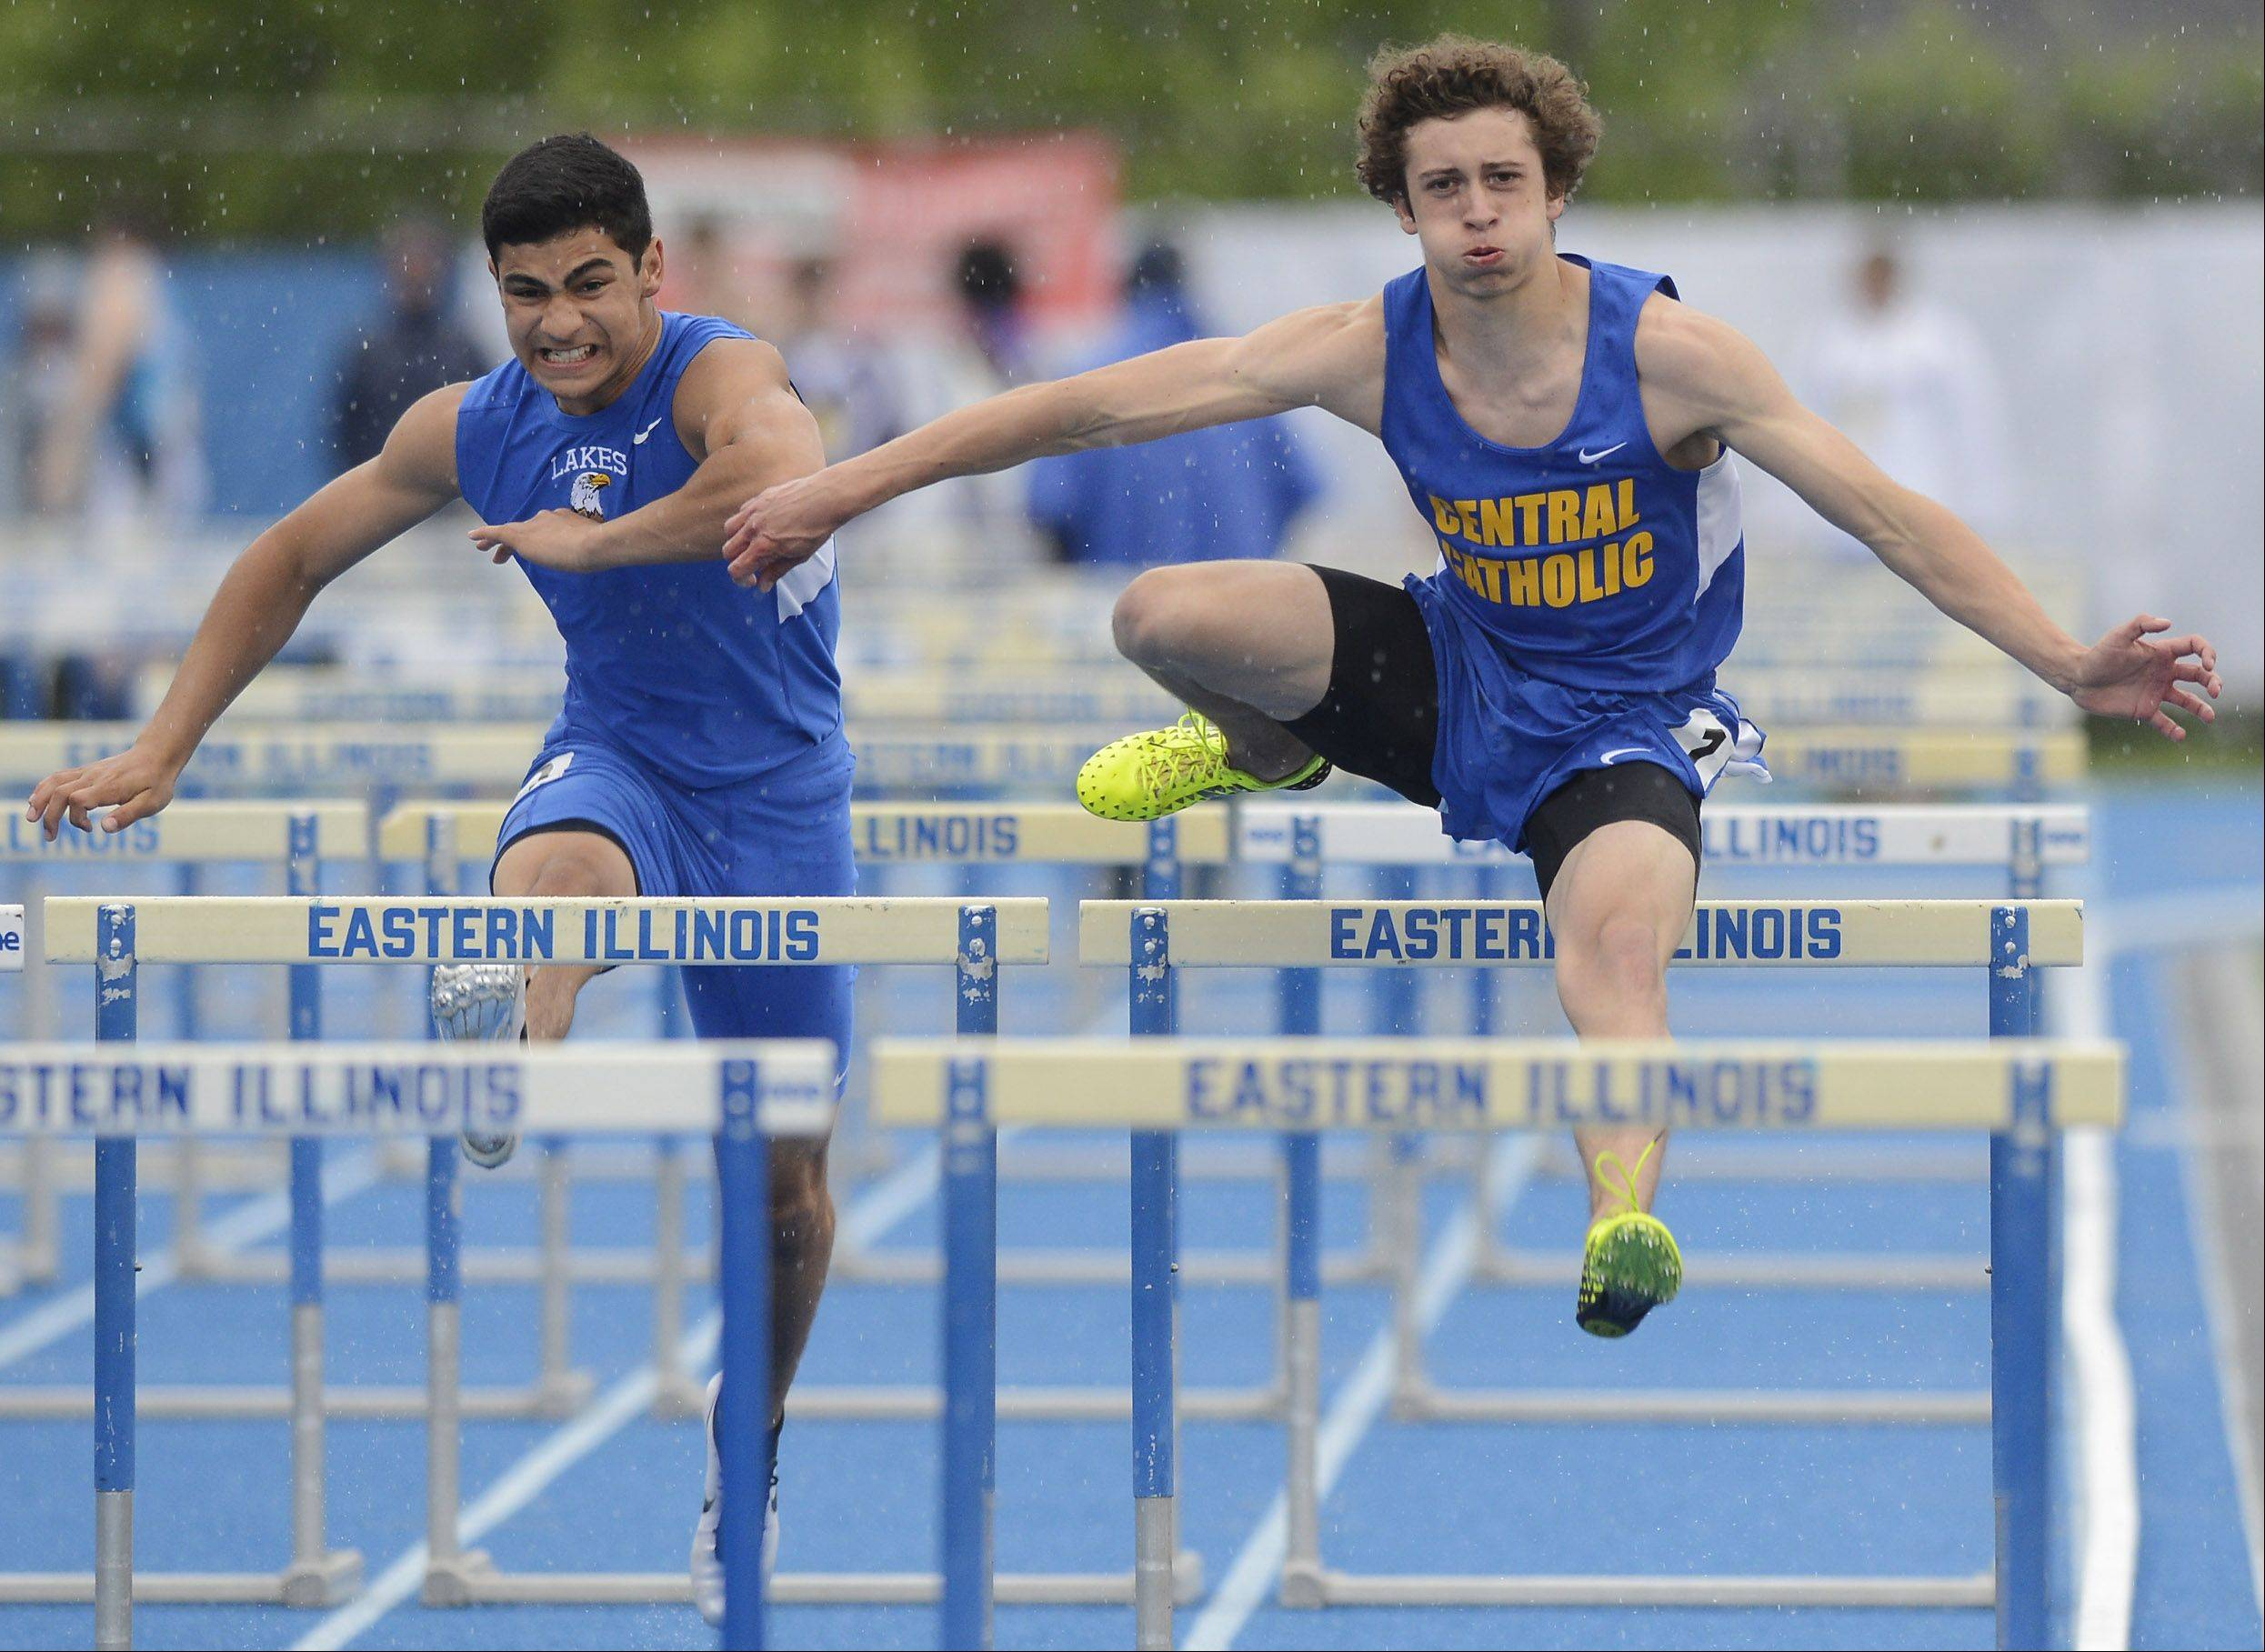 Rodolphe Boyer, left, of Lakes High School and Patrick Lefevre of Aurora Central Catholic run alongside each other in the Class 2A 110-meter high hurdles during the boys state track finals in Charleston Saturday.